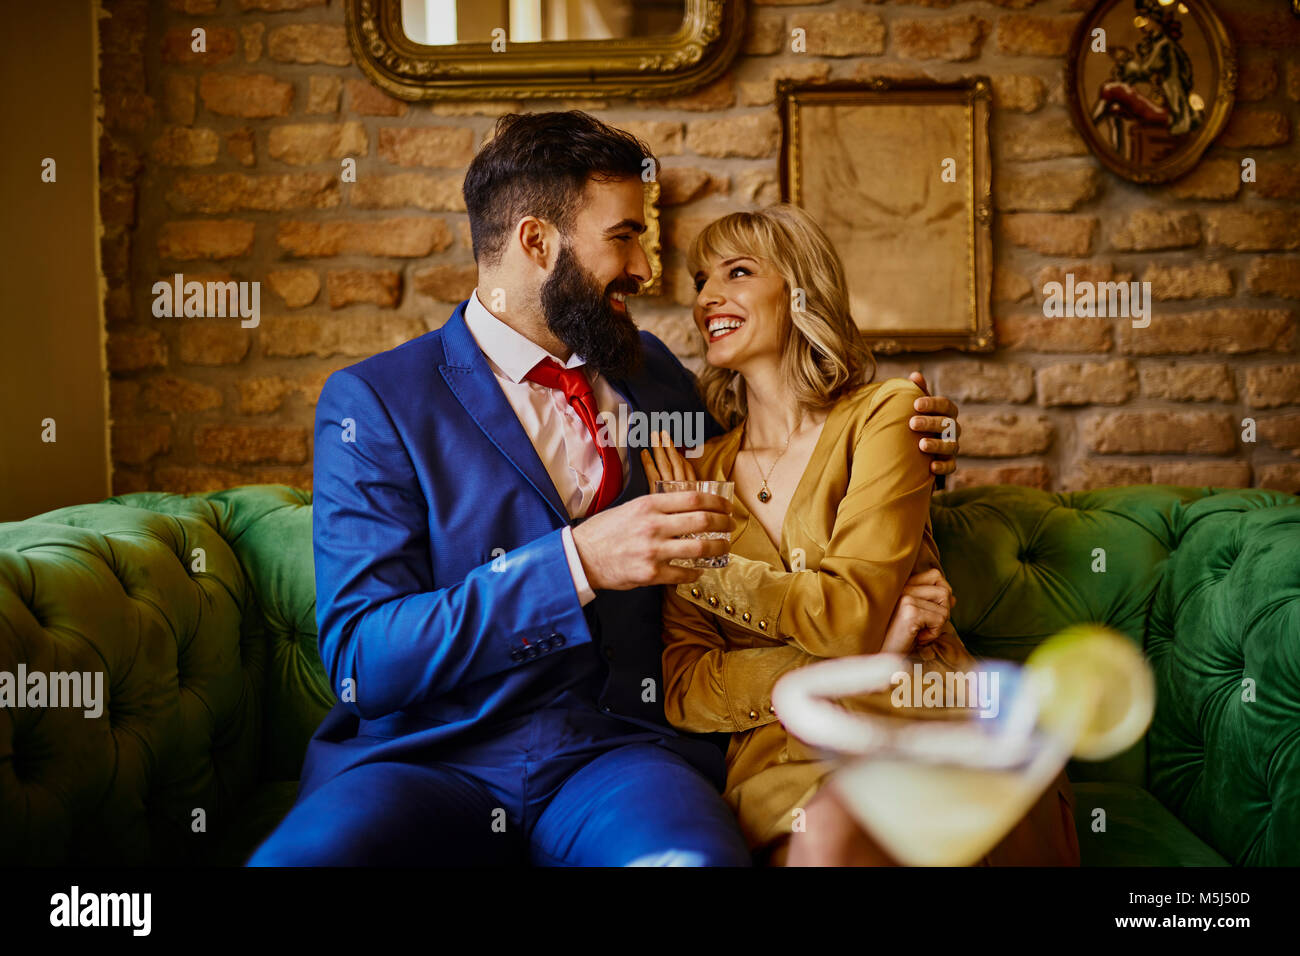 Happy elegant couple sitting on couch embracing Photo Stock